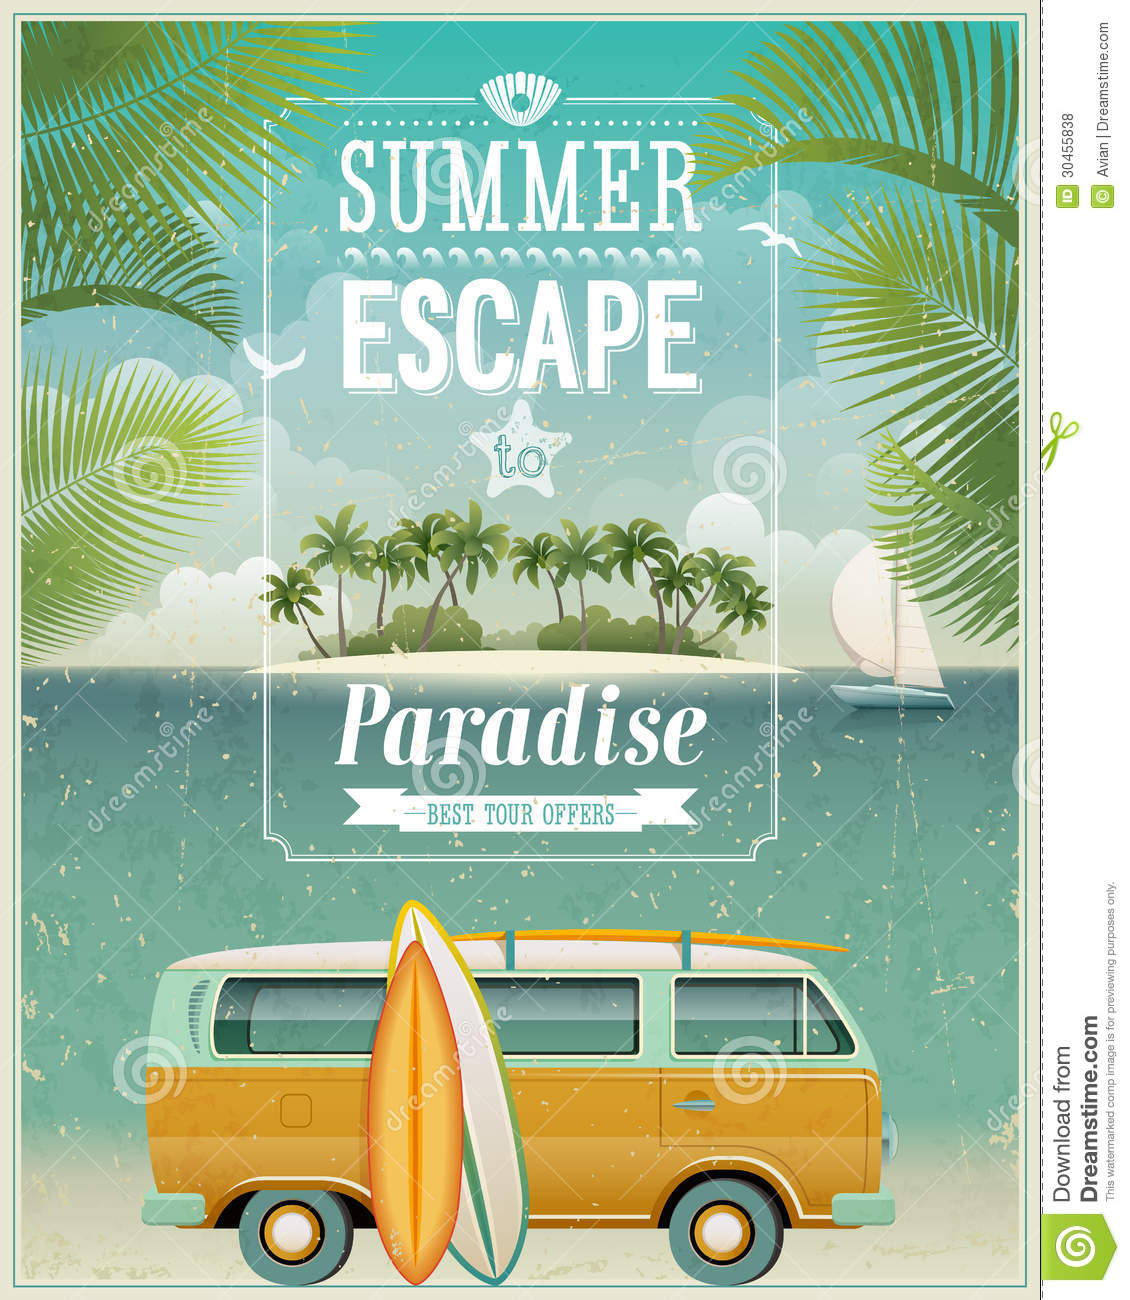 Vintage Seaside View Poster With Surfing Van. Vect Stock